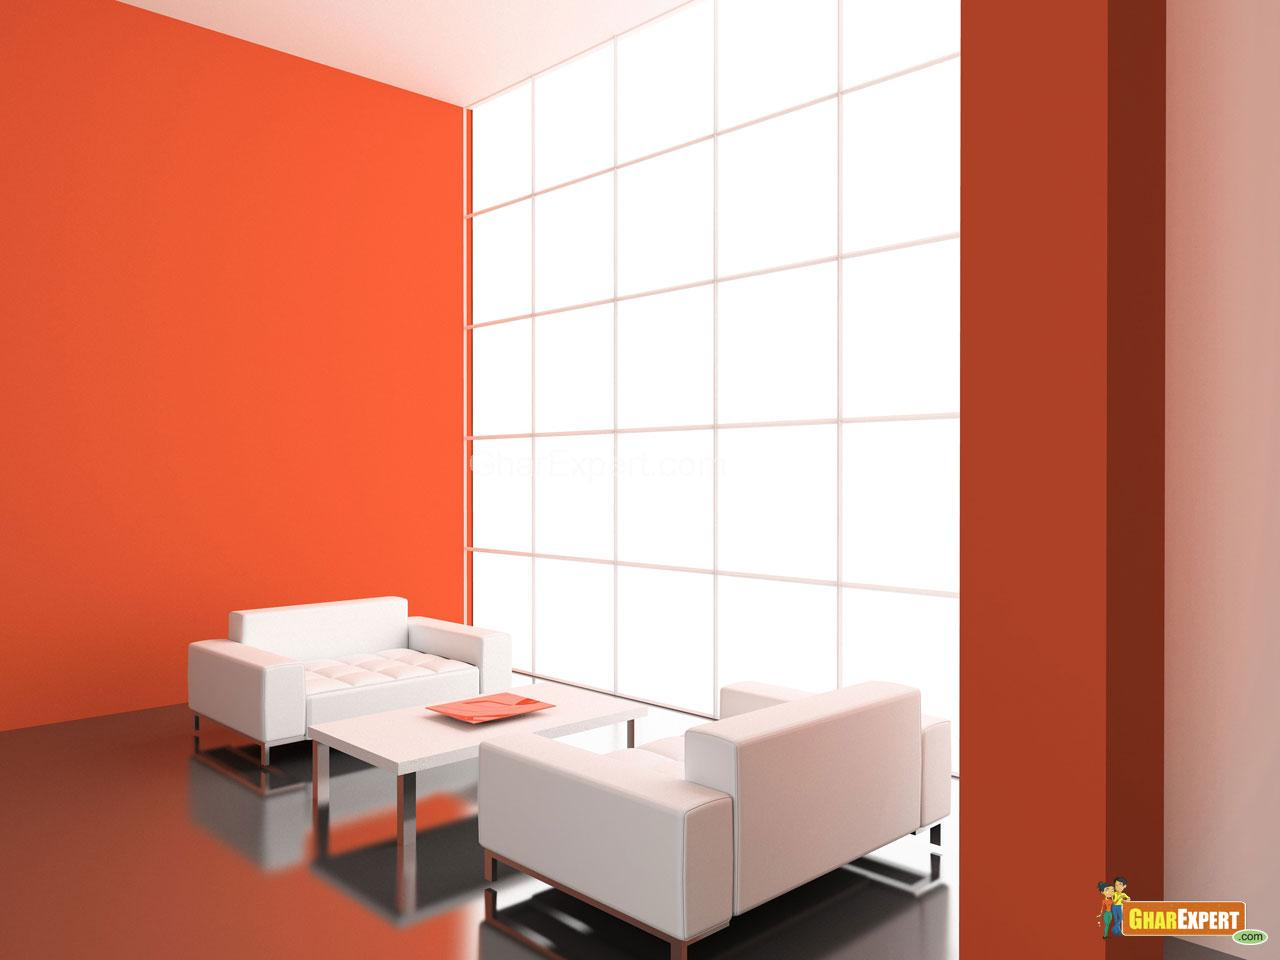 Wall paint in a drawing room gharexpert for Nerolac texture paint designs living room